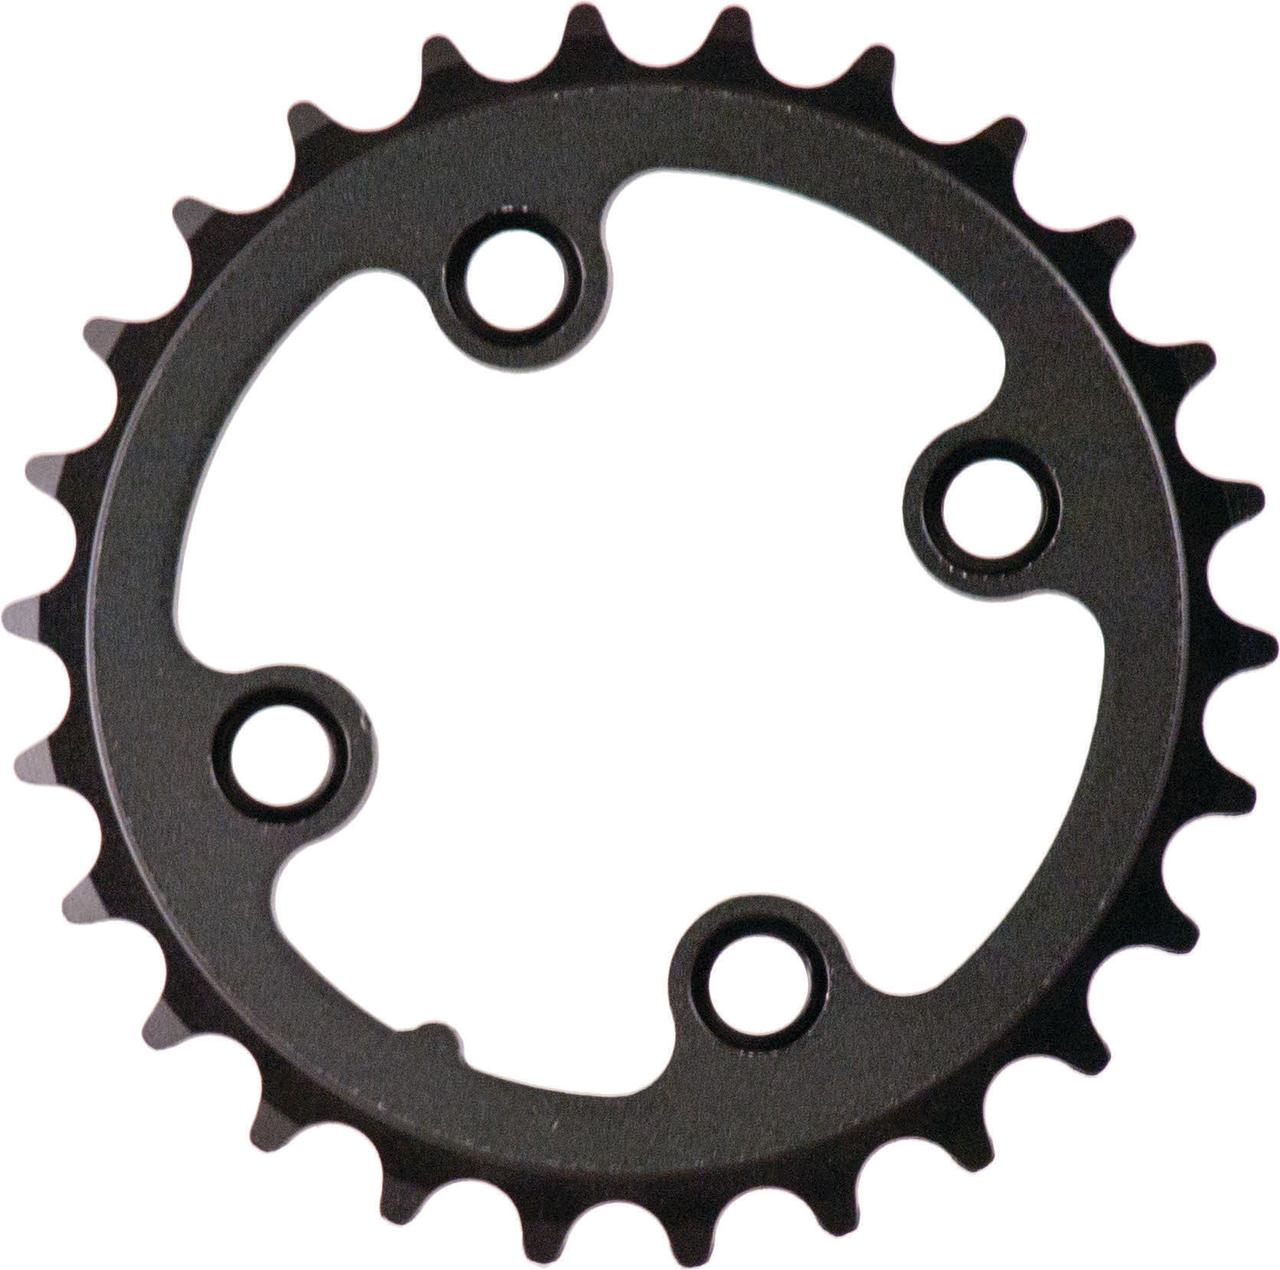 ACTION 64MM 26T BLK/SIL 3/32 INNER CHAINRING CR0373